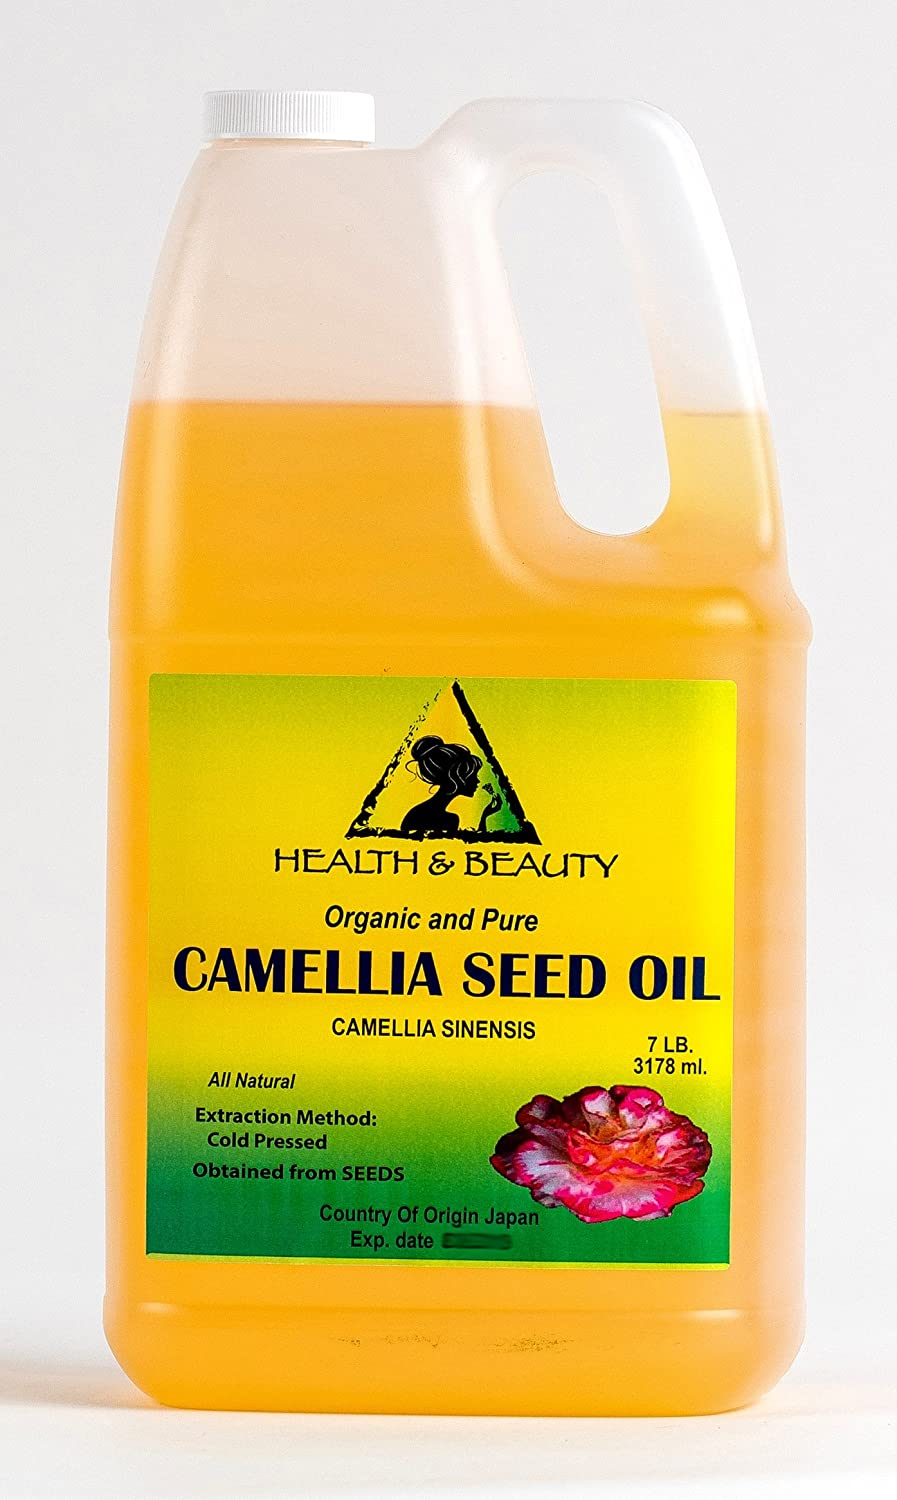 Camellia Seed Oil Organic Carrier Cold Pressed 100% Pure 7 LB, 1 gal, 3178 ml H&B OILS CENTER Co.